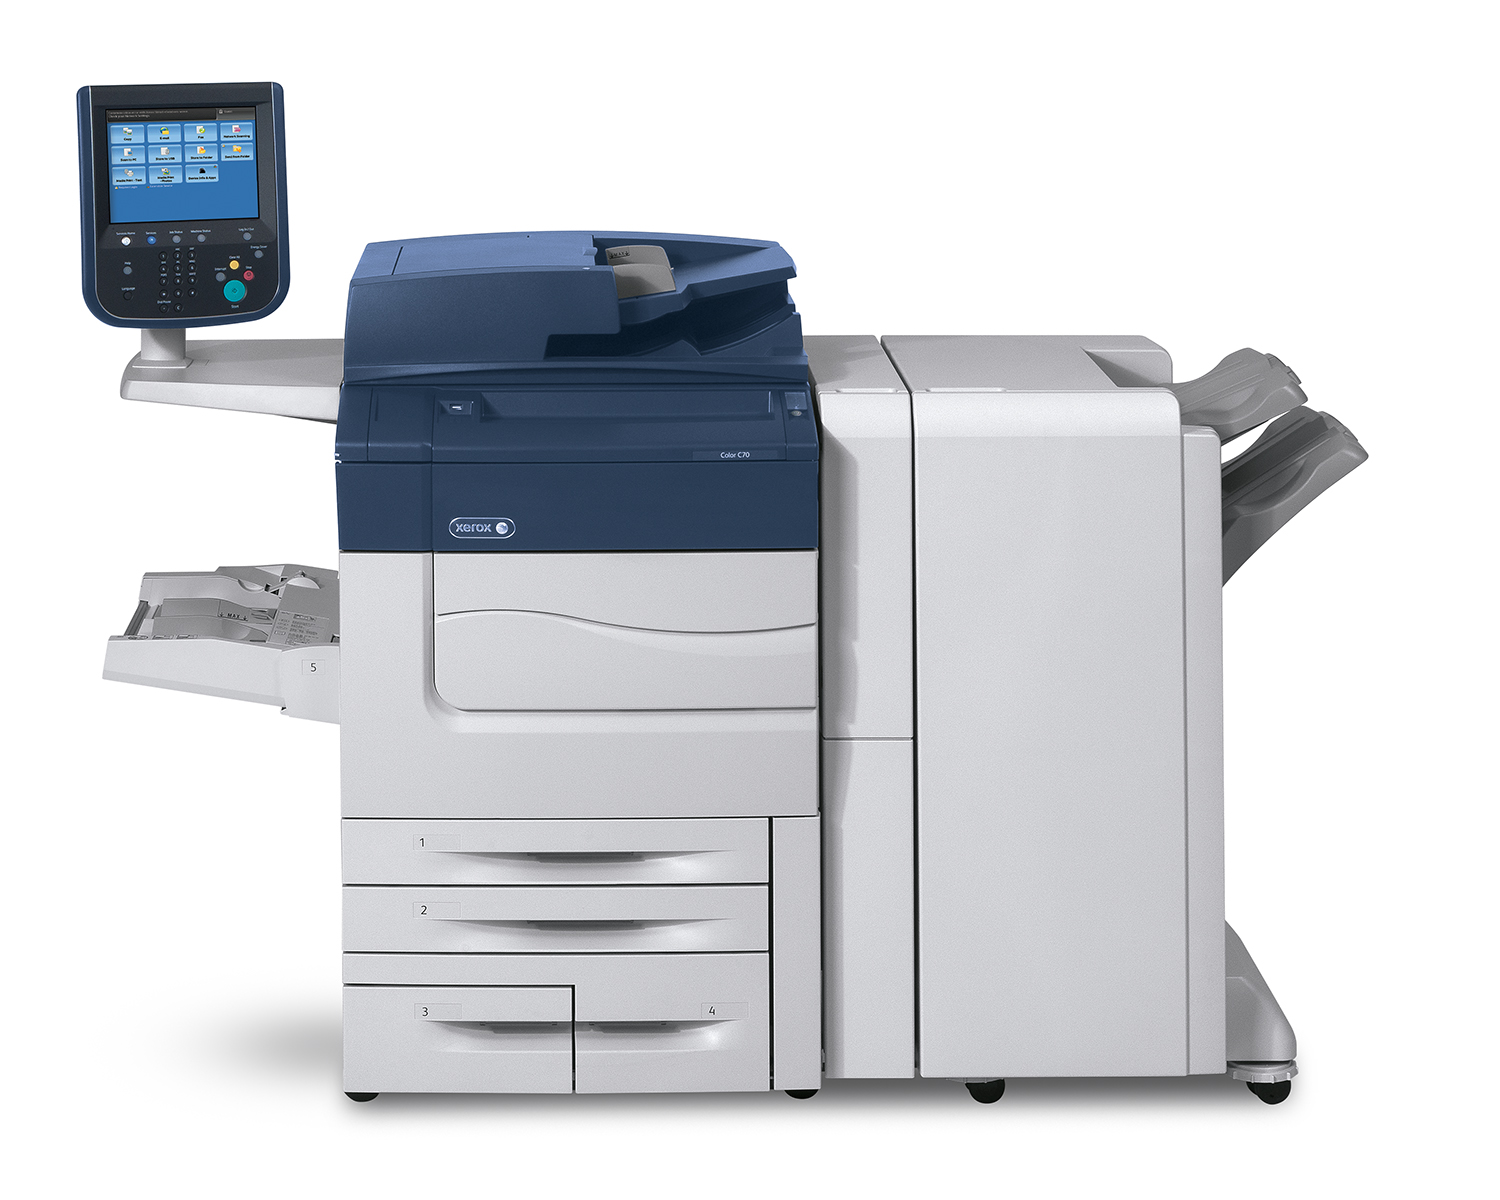 xerox 560 Copy Machine Sales 56547, 56560, 56561, 56562, 56563